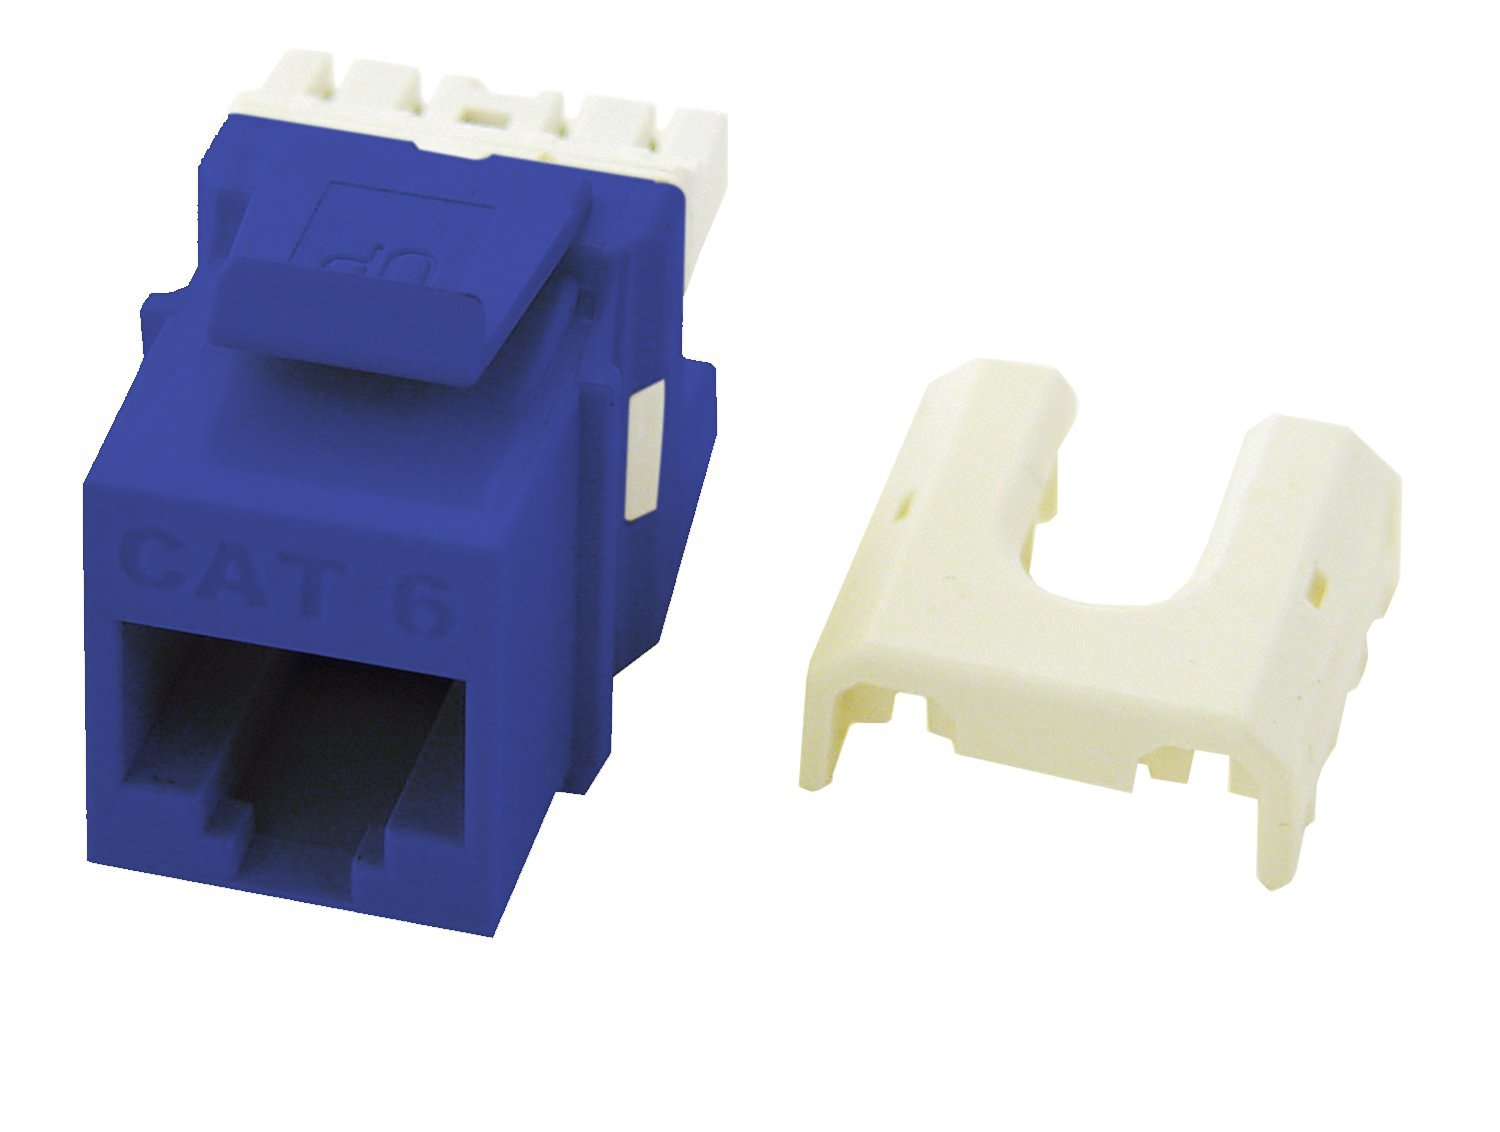 Installation Hardware Accessories Plates Keystone Inserts Wiring Rj45 Jack Wp3476 Be Onq Quick Connect Cat6 Insert Blue